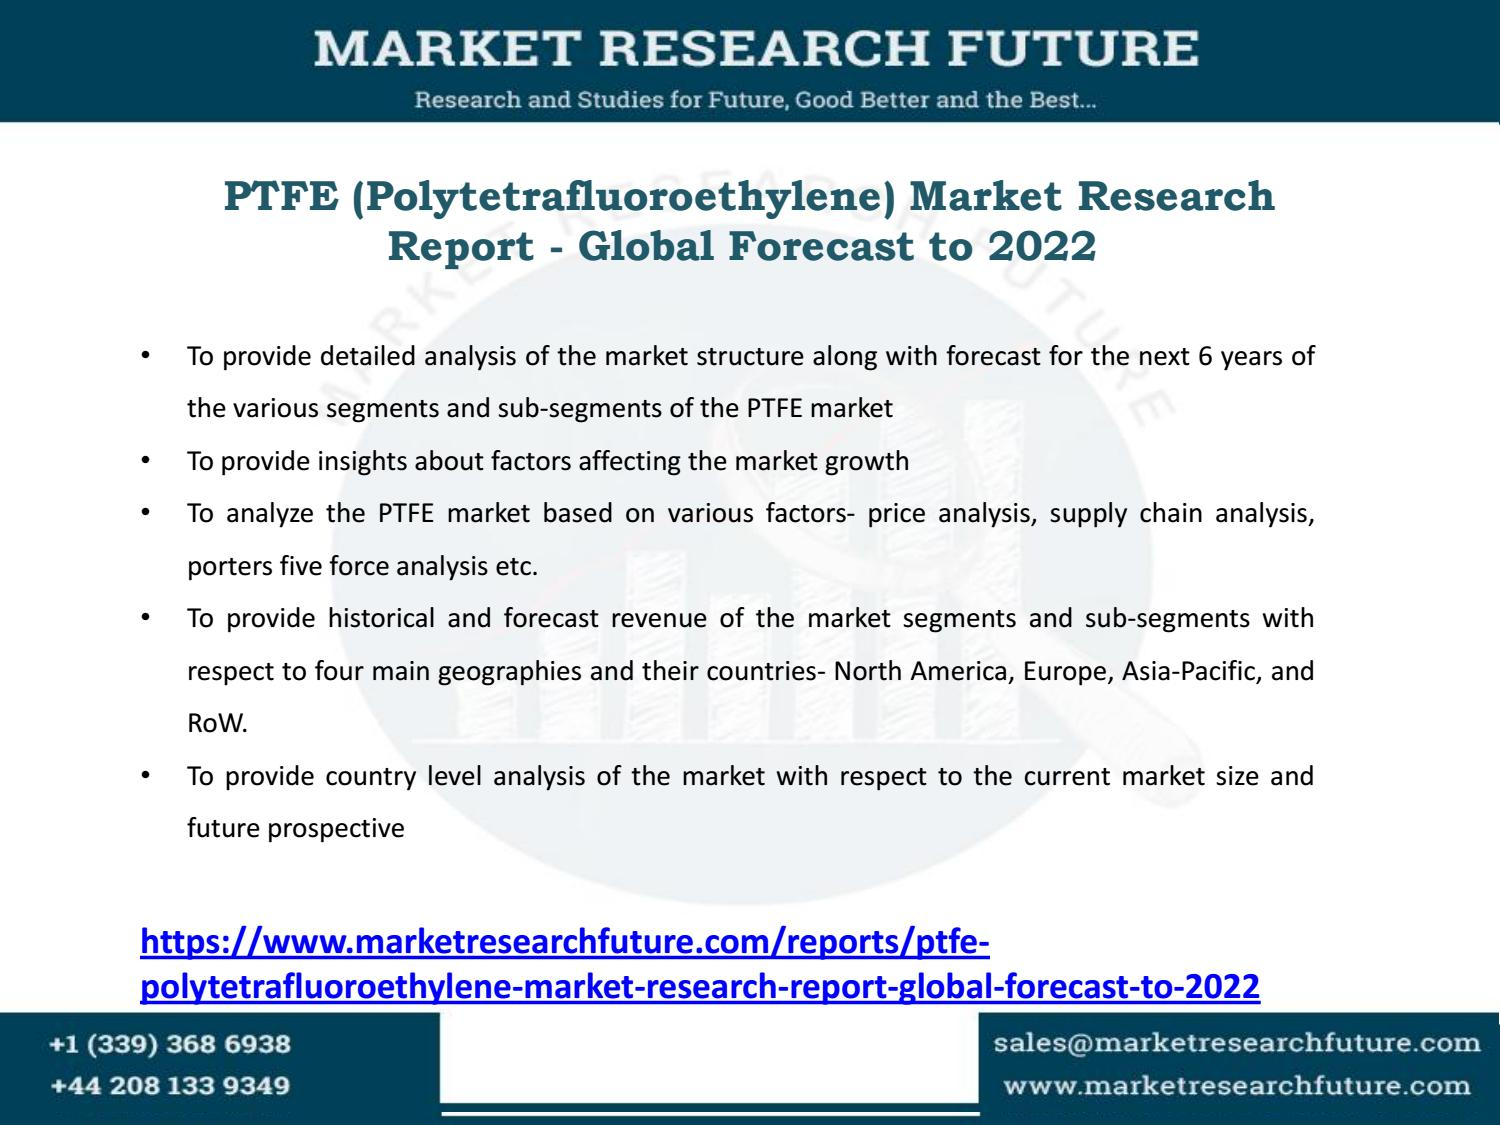 PTFE (Polytetrafluoroethylene) Market Applications,Future